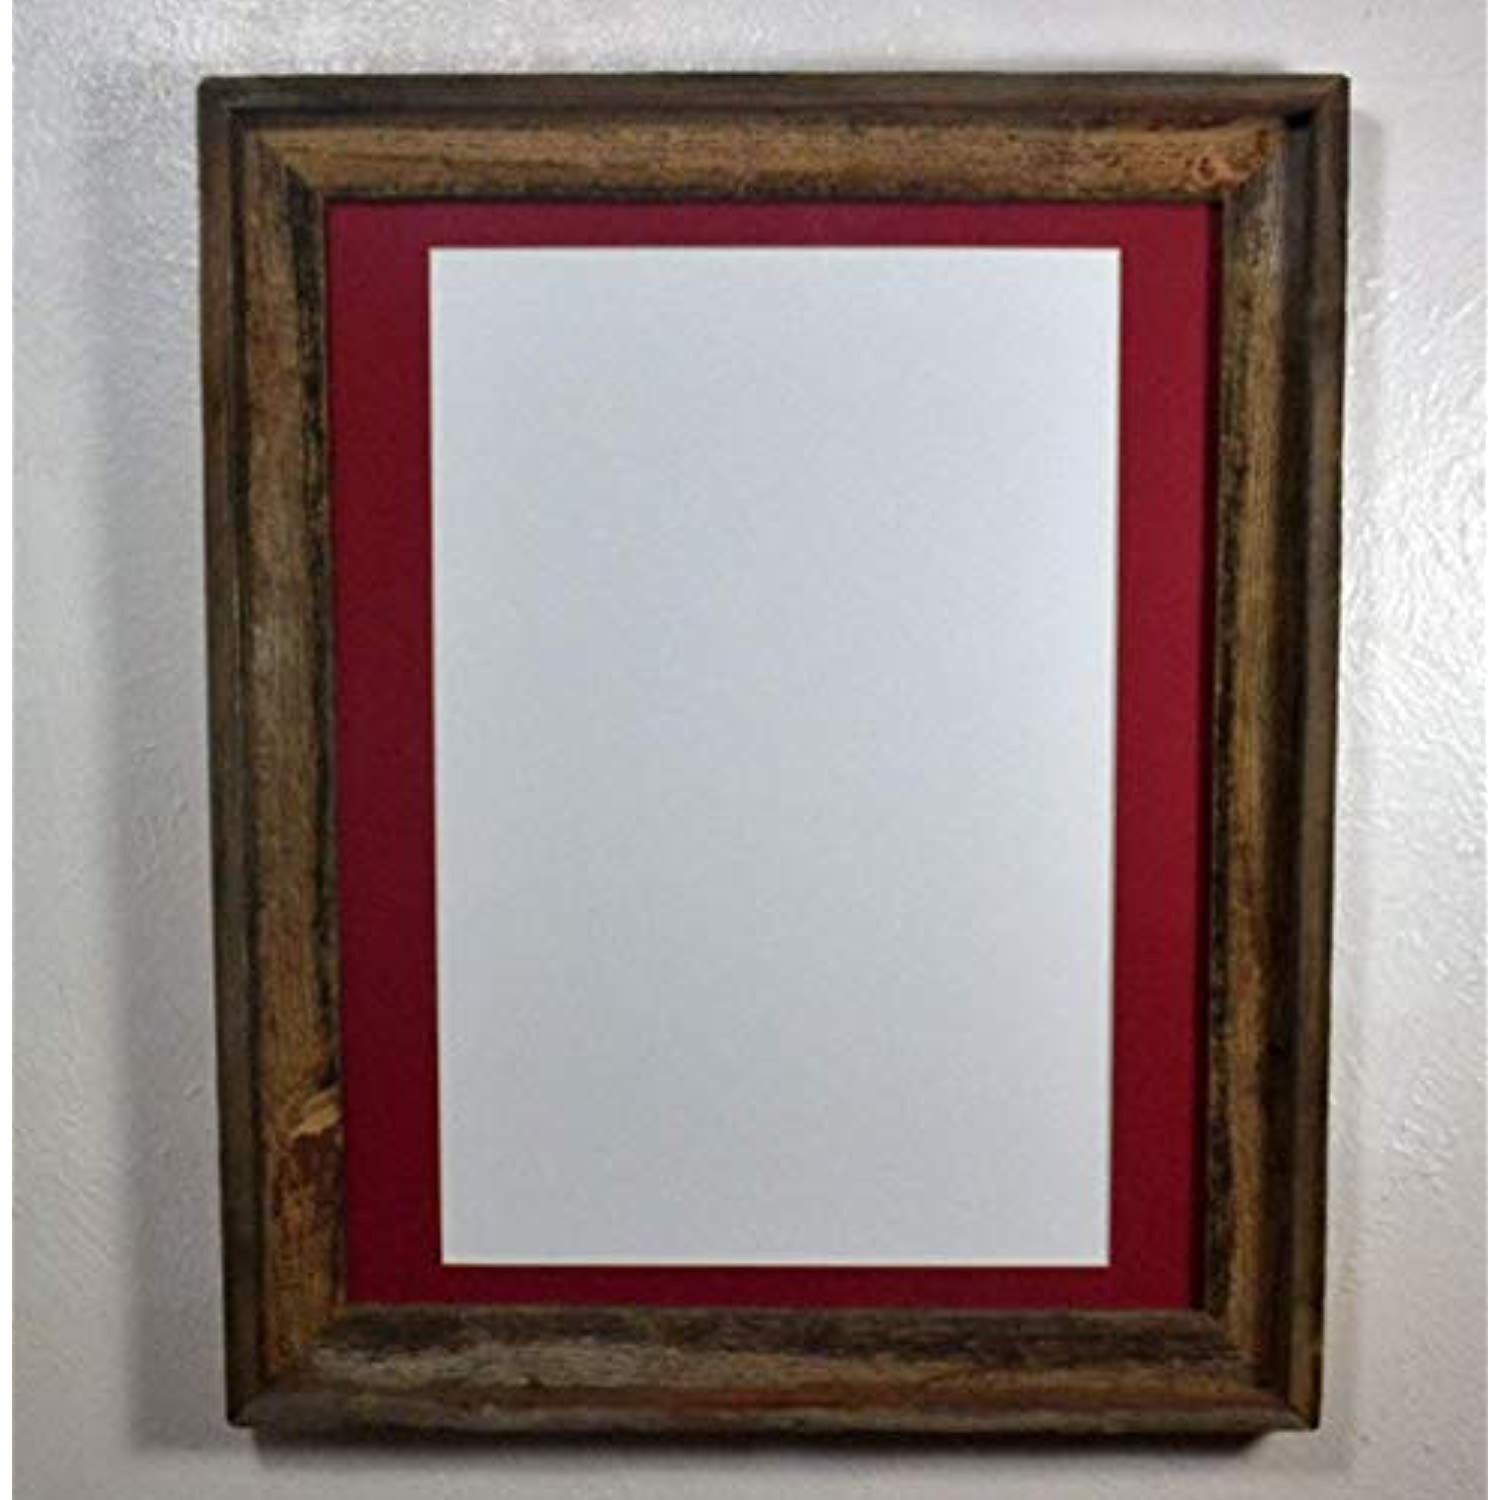 Rustic Wood Frame 12x18 Red Mat Wall Hung Poster Frame With Glass 16x20 Without Mat Check This Awesome Wood Picture Frames Rustic Frames Picture Frame Mat